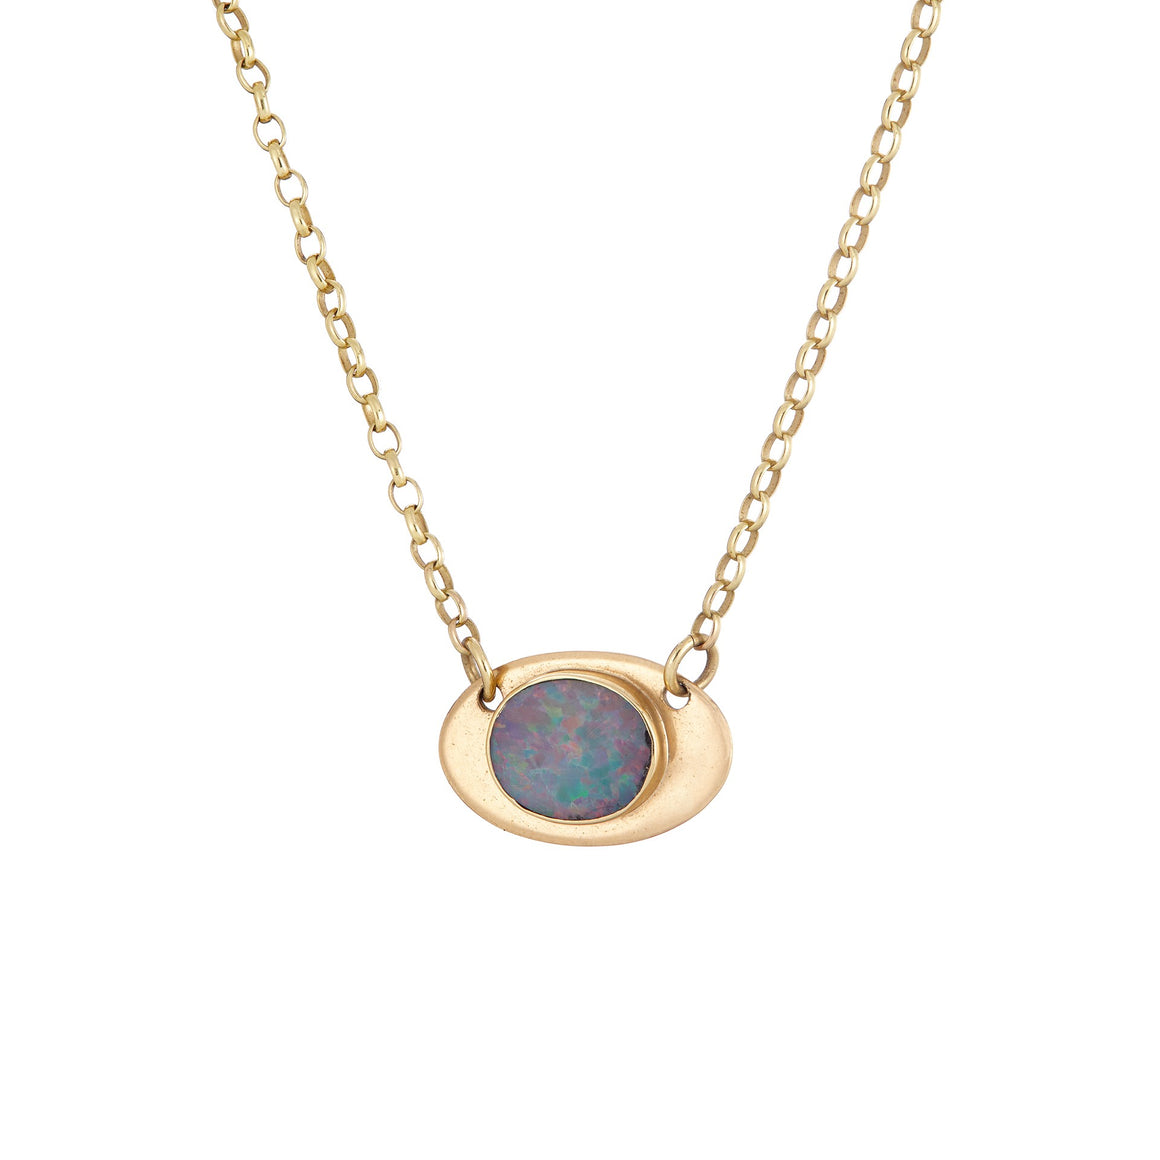 9ct solid gold and australian back opal necklace